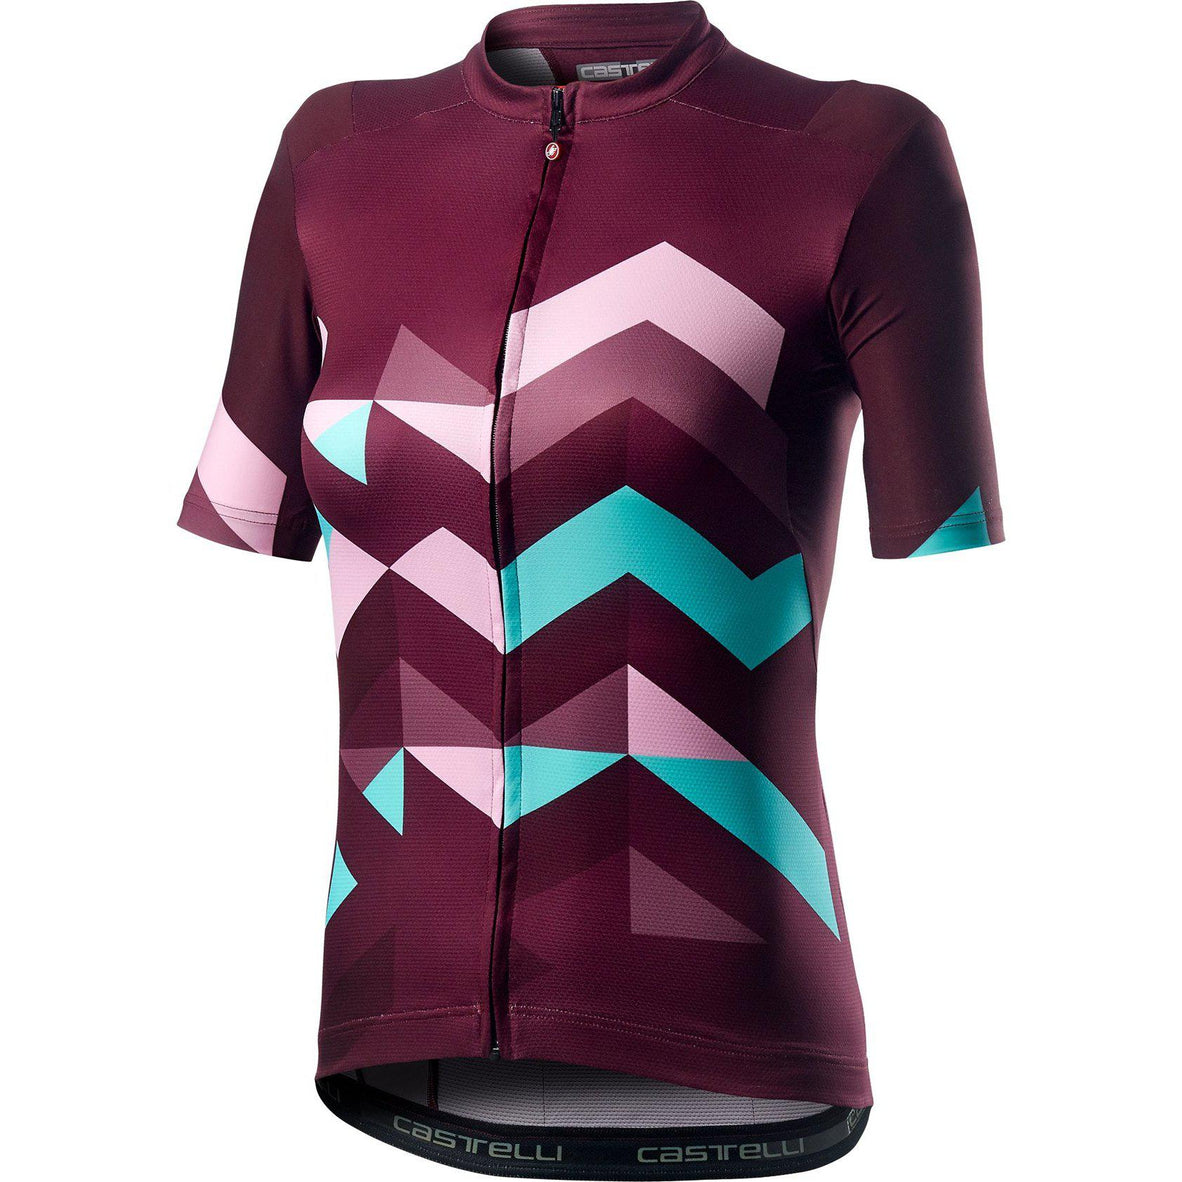 Castelli-Castelli Unlimited Women's Jersey-Sangria-XS-CS200761331-saddleback-elite-performance-cycling